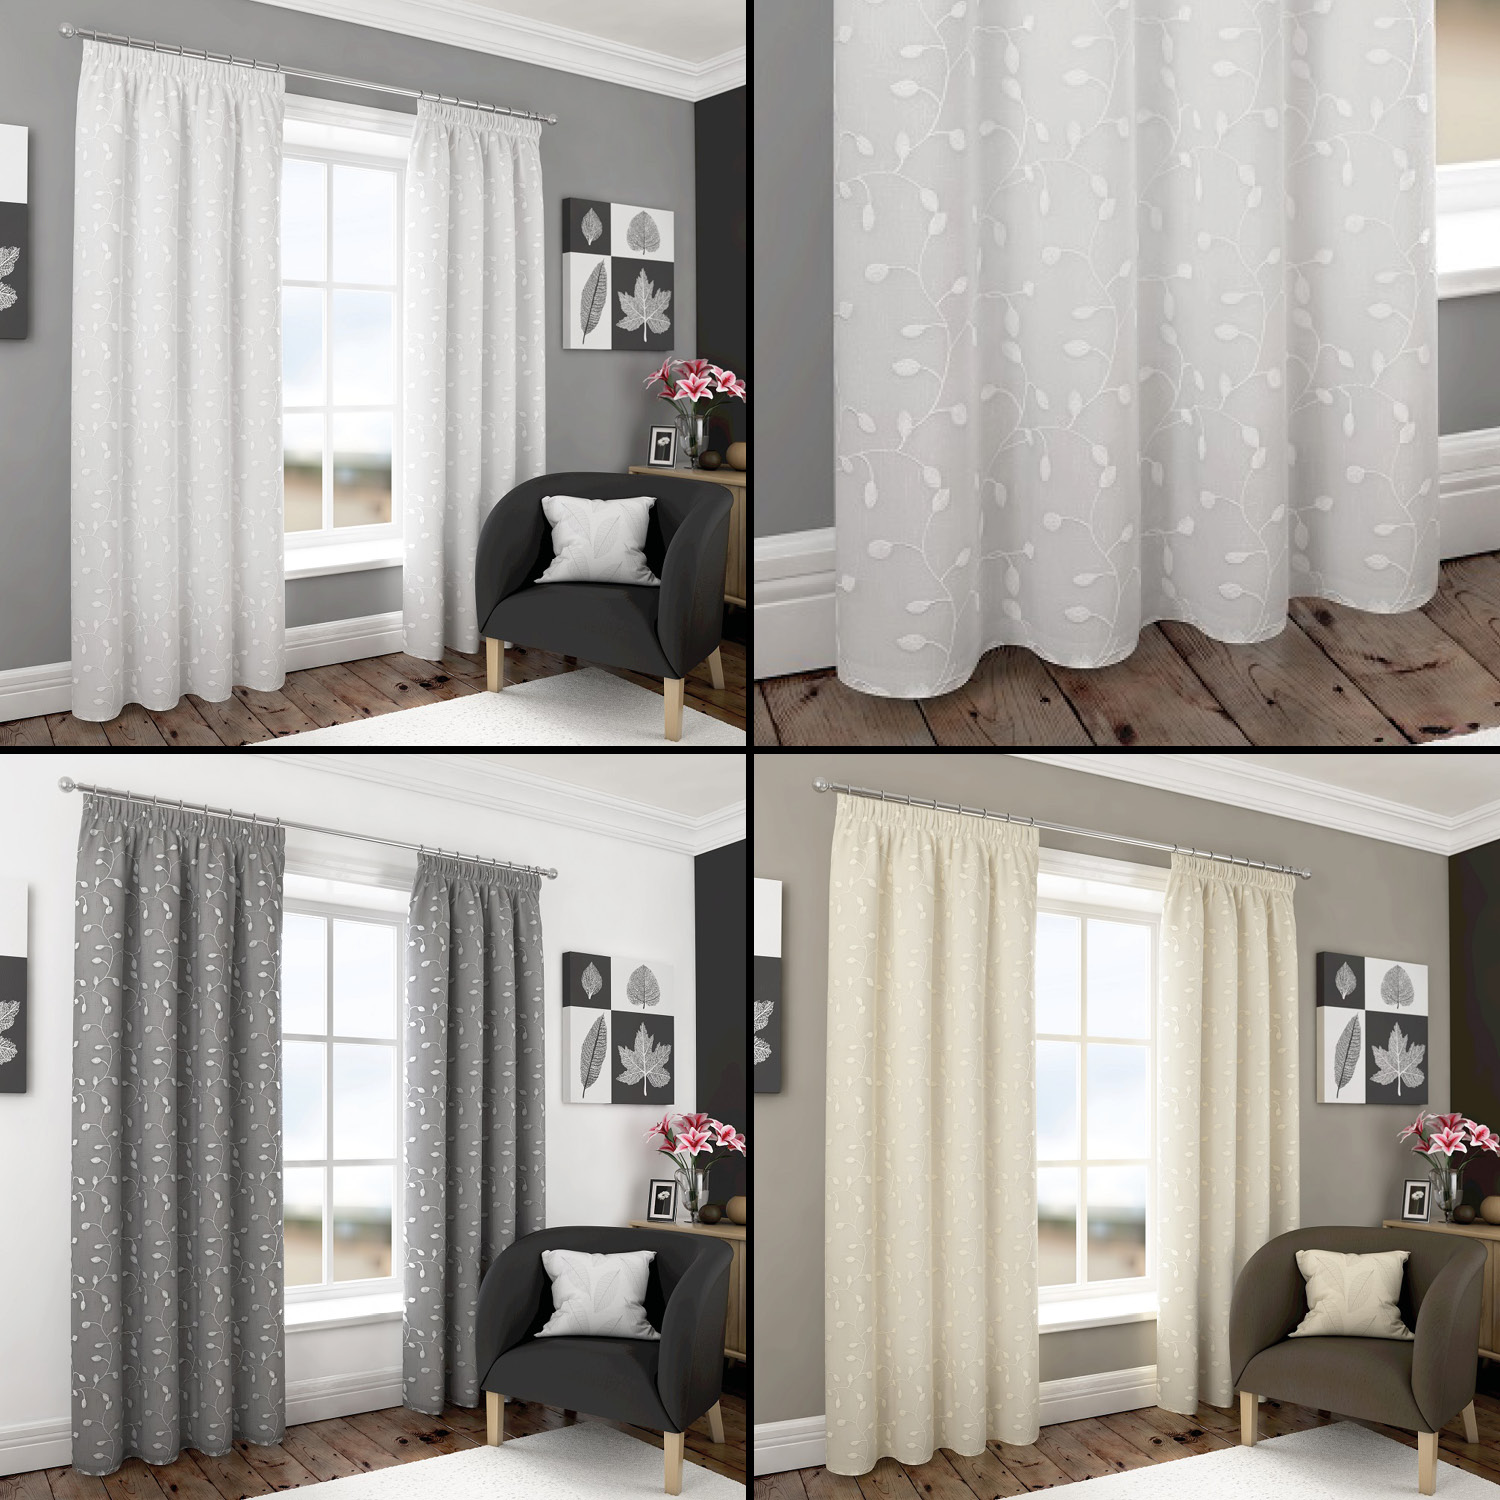 Embroidered Curtains | Pom Pom Drapes | Embroidered Curtain Panels